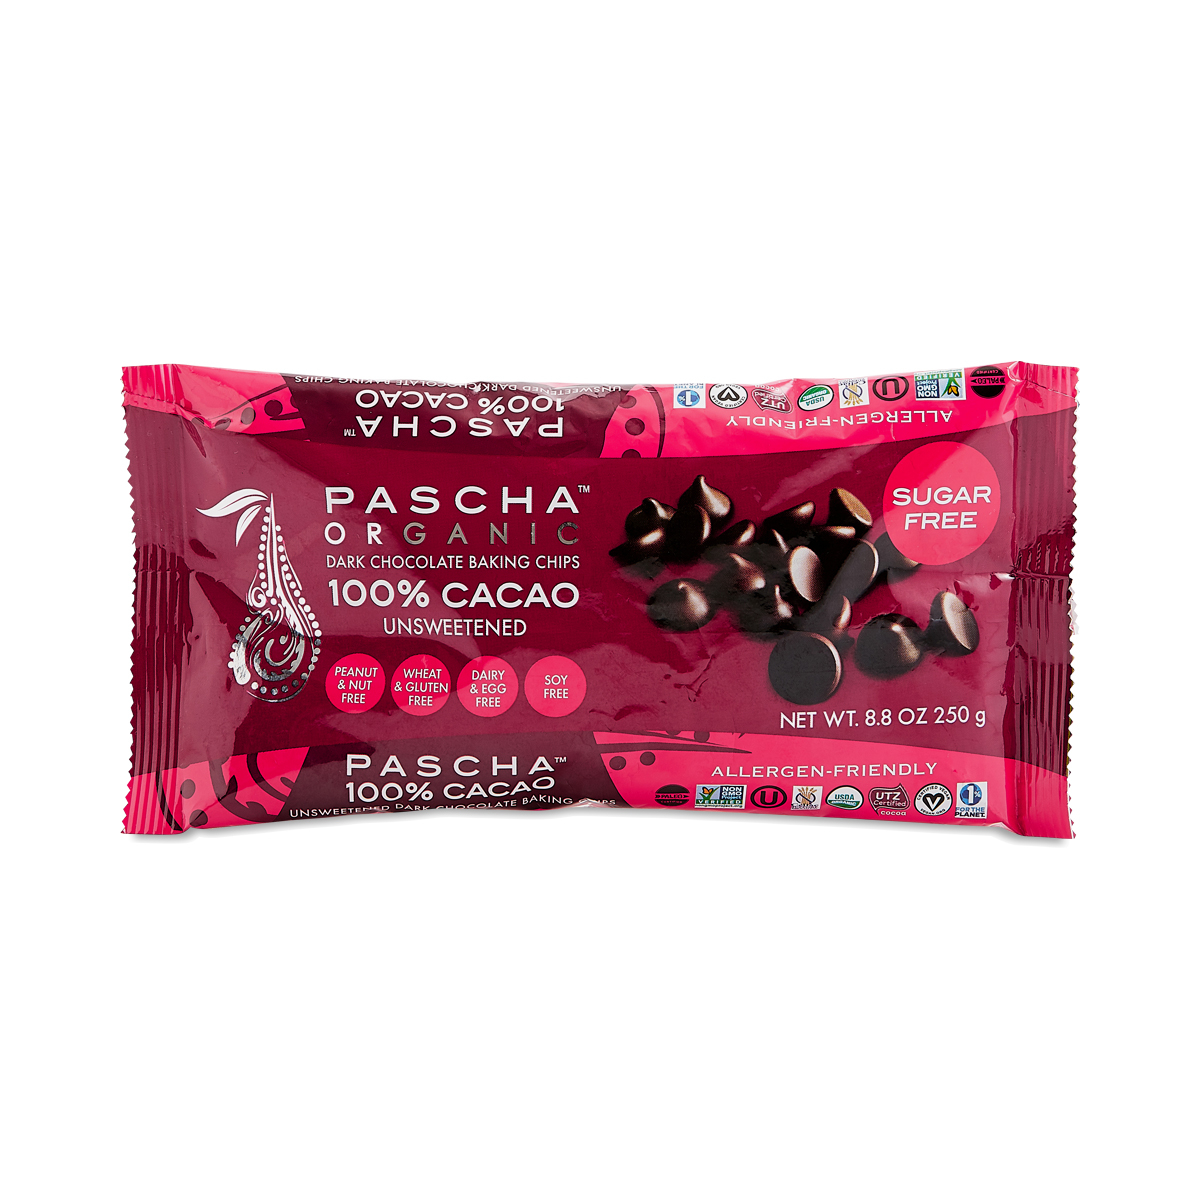 Pascha Organic 100% Cacao Unsweetened Dark Chocolate Chips 8.8 oz bag